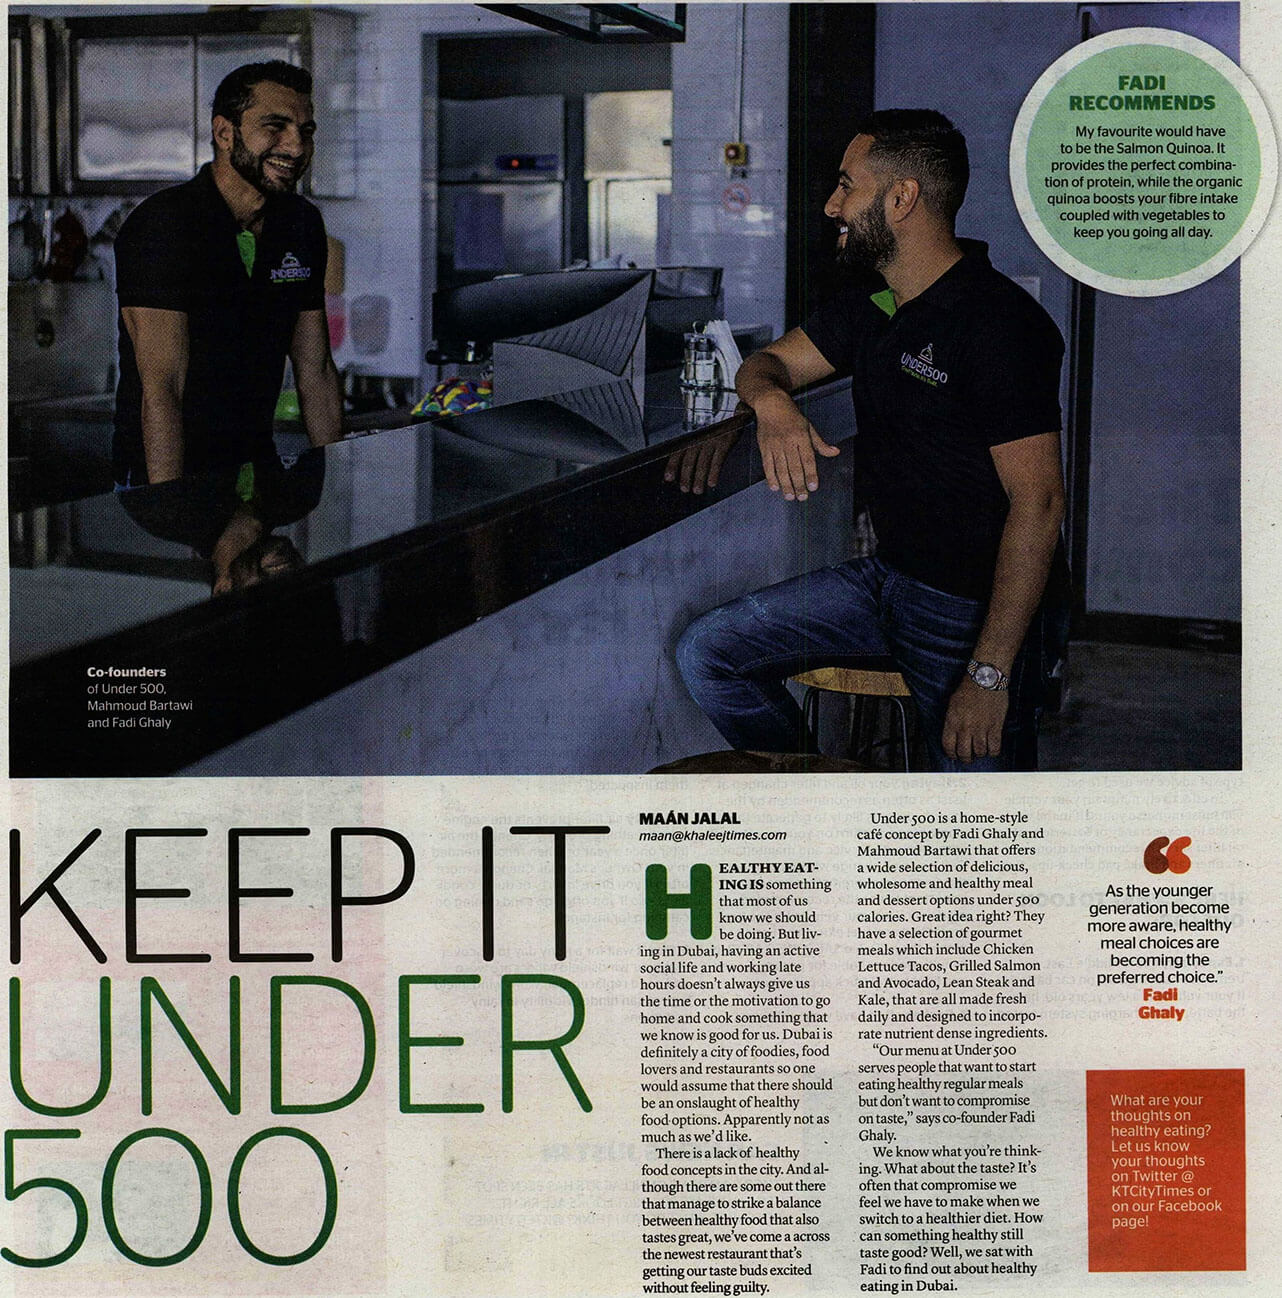 Under 500 - Khaleej Times City Times - 20 June 2016 - Page 6